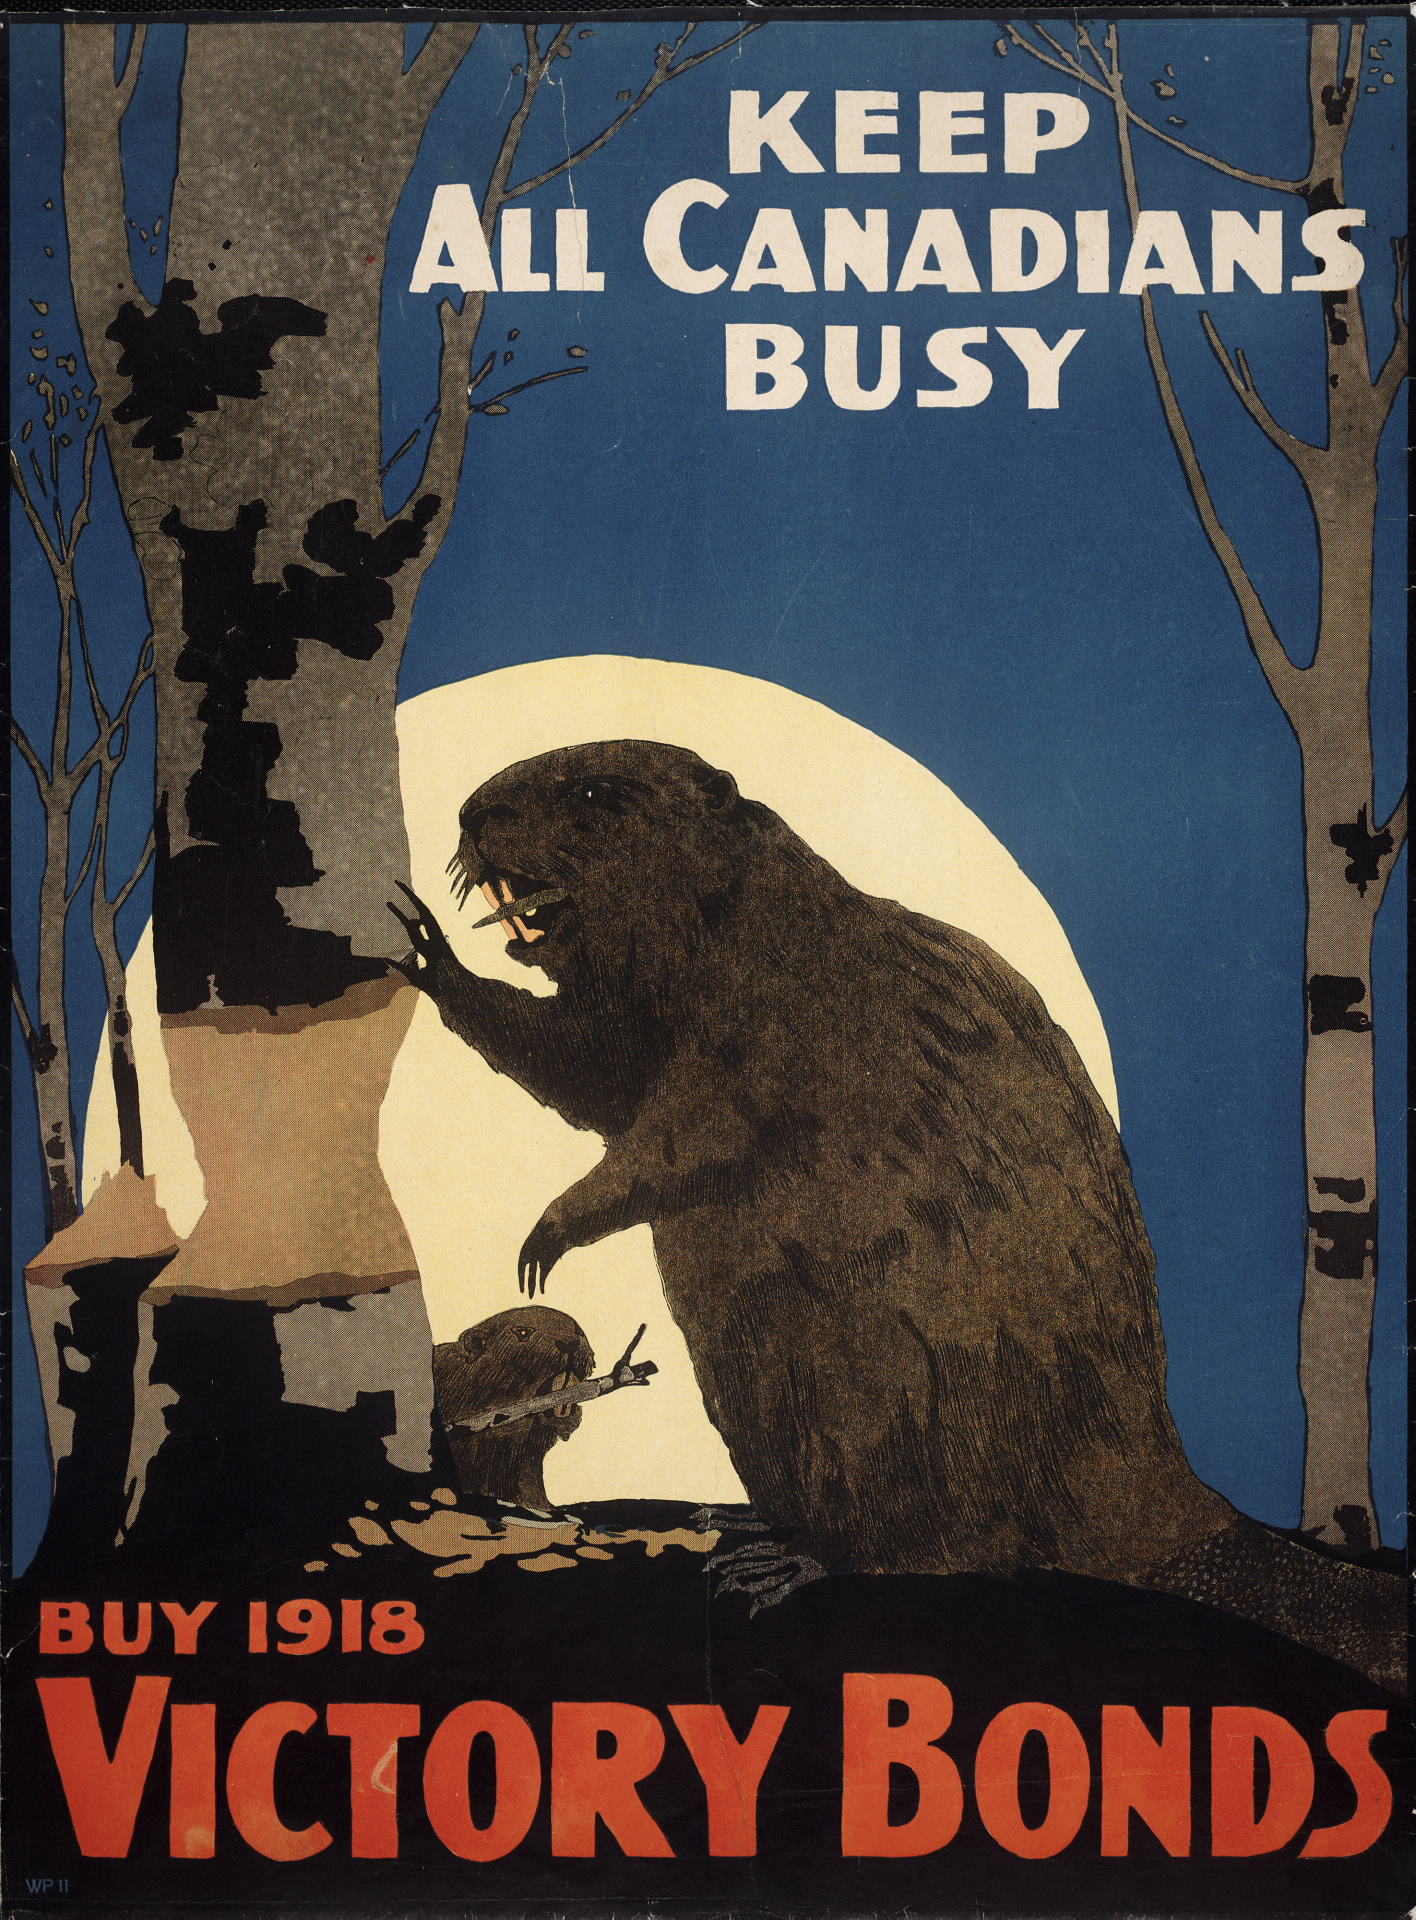 Filekeep All Canadians Busy Victory Bonds Posterg Wikimedia